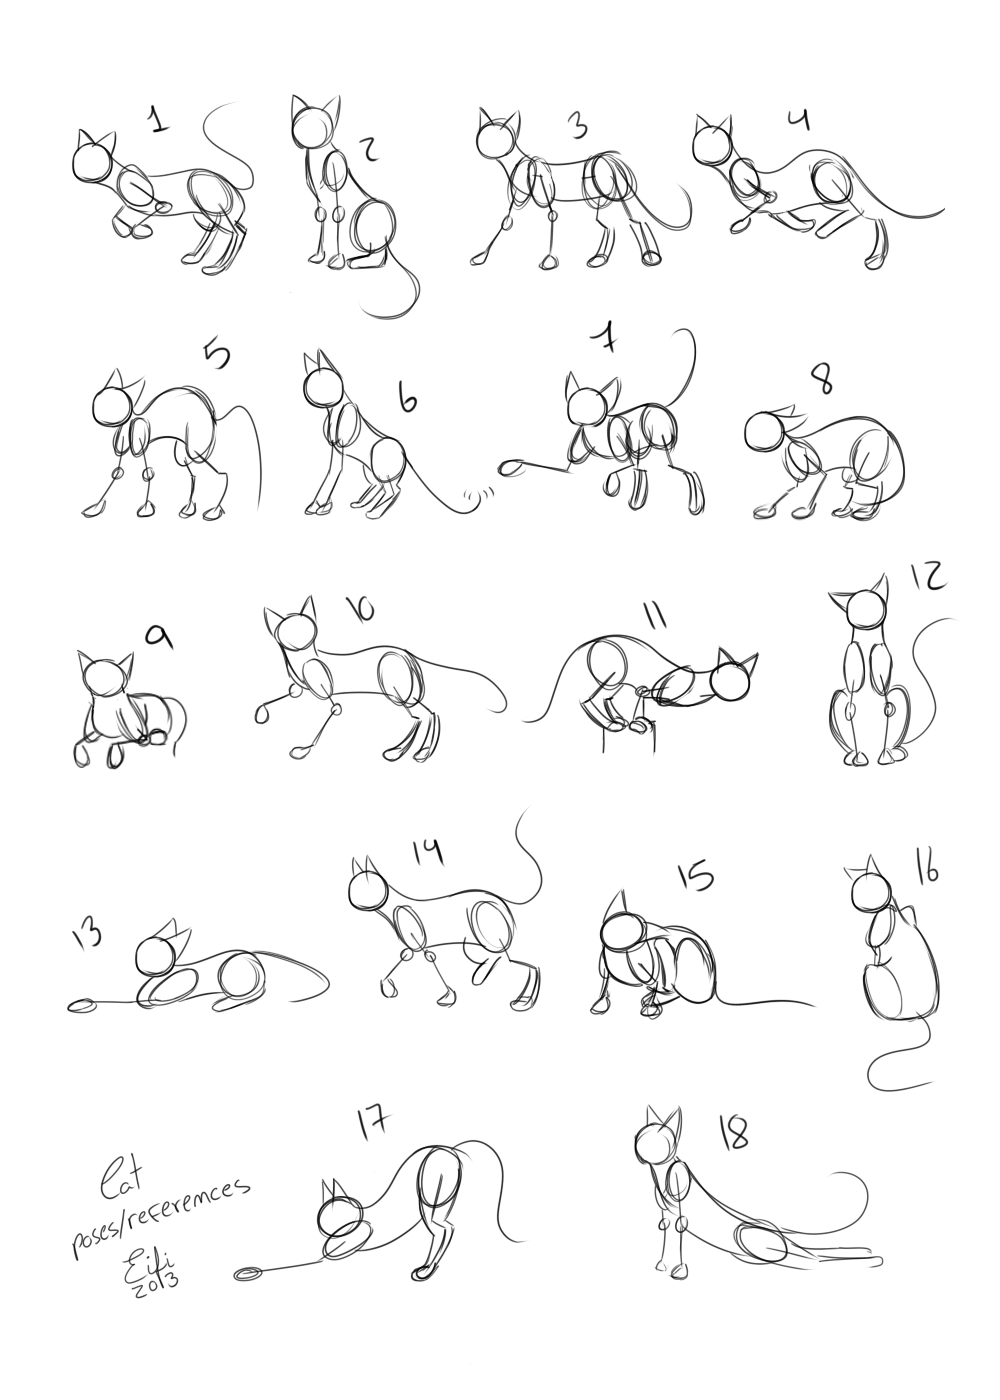 Cats Poses References By Eifi Copper Deviantart Com On Deviantart Animal Drawings Cat Drawing Art Reference Poses